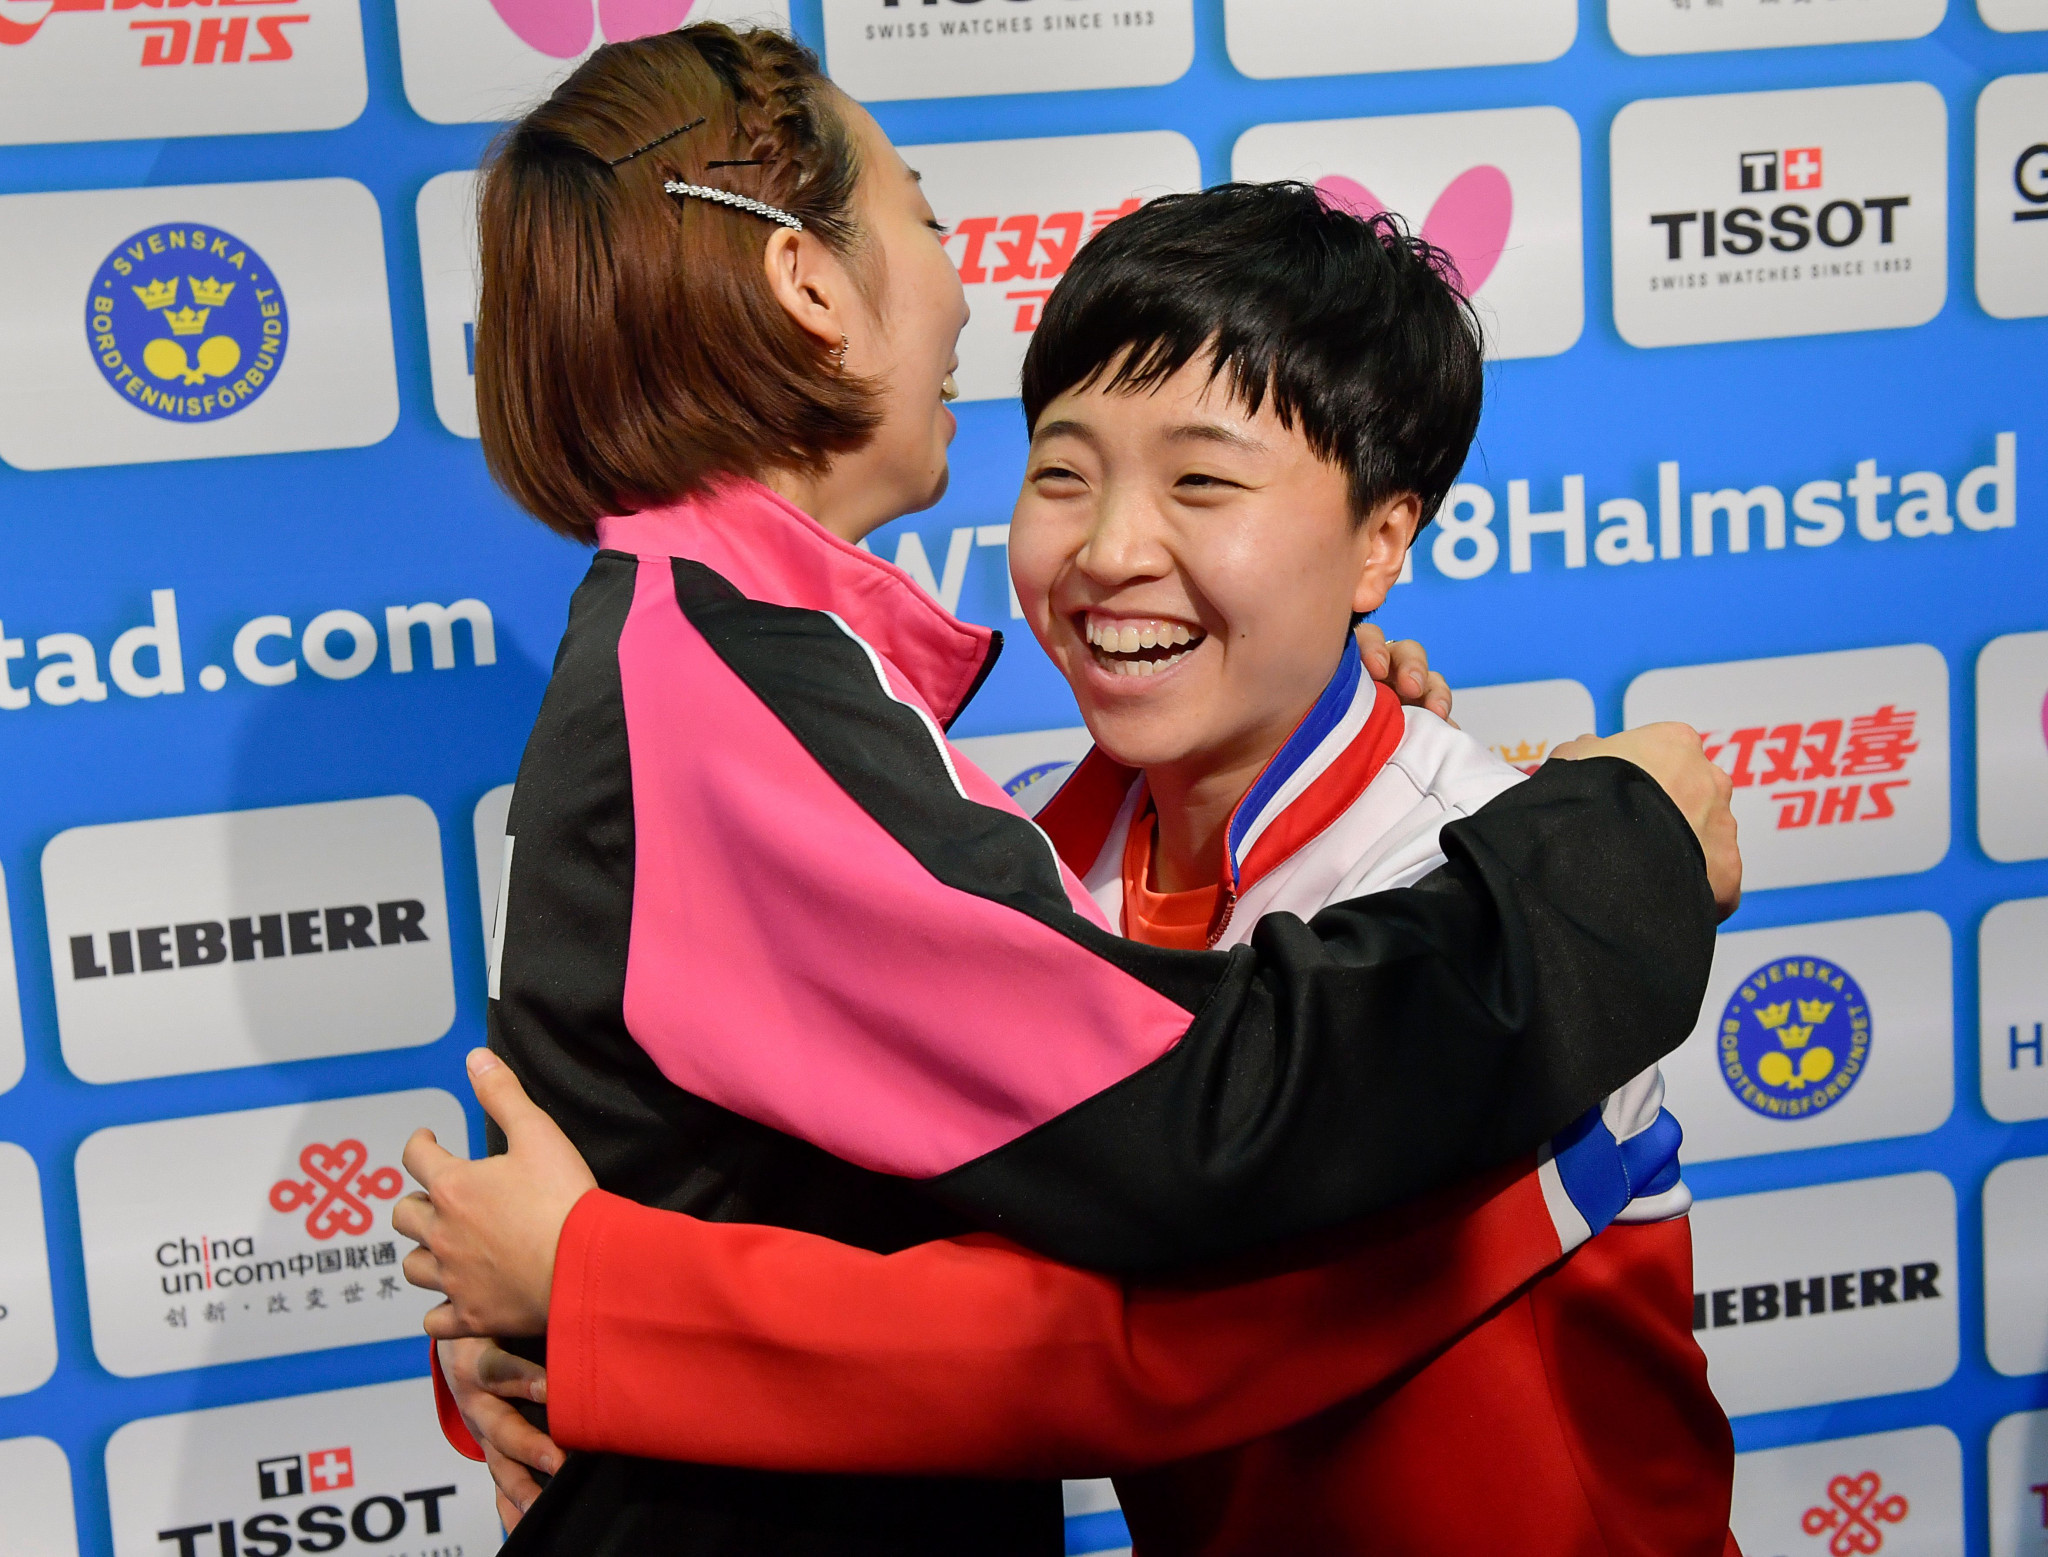 It was all smiles for the Korean players after the ITTF gave approval for a unified team ©Getty Images